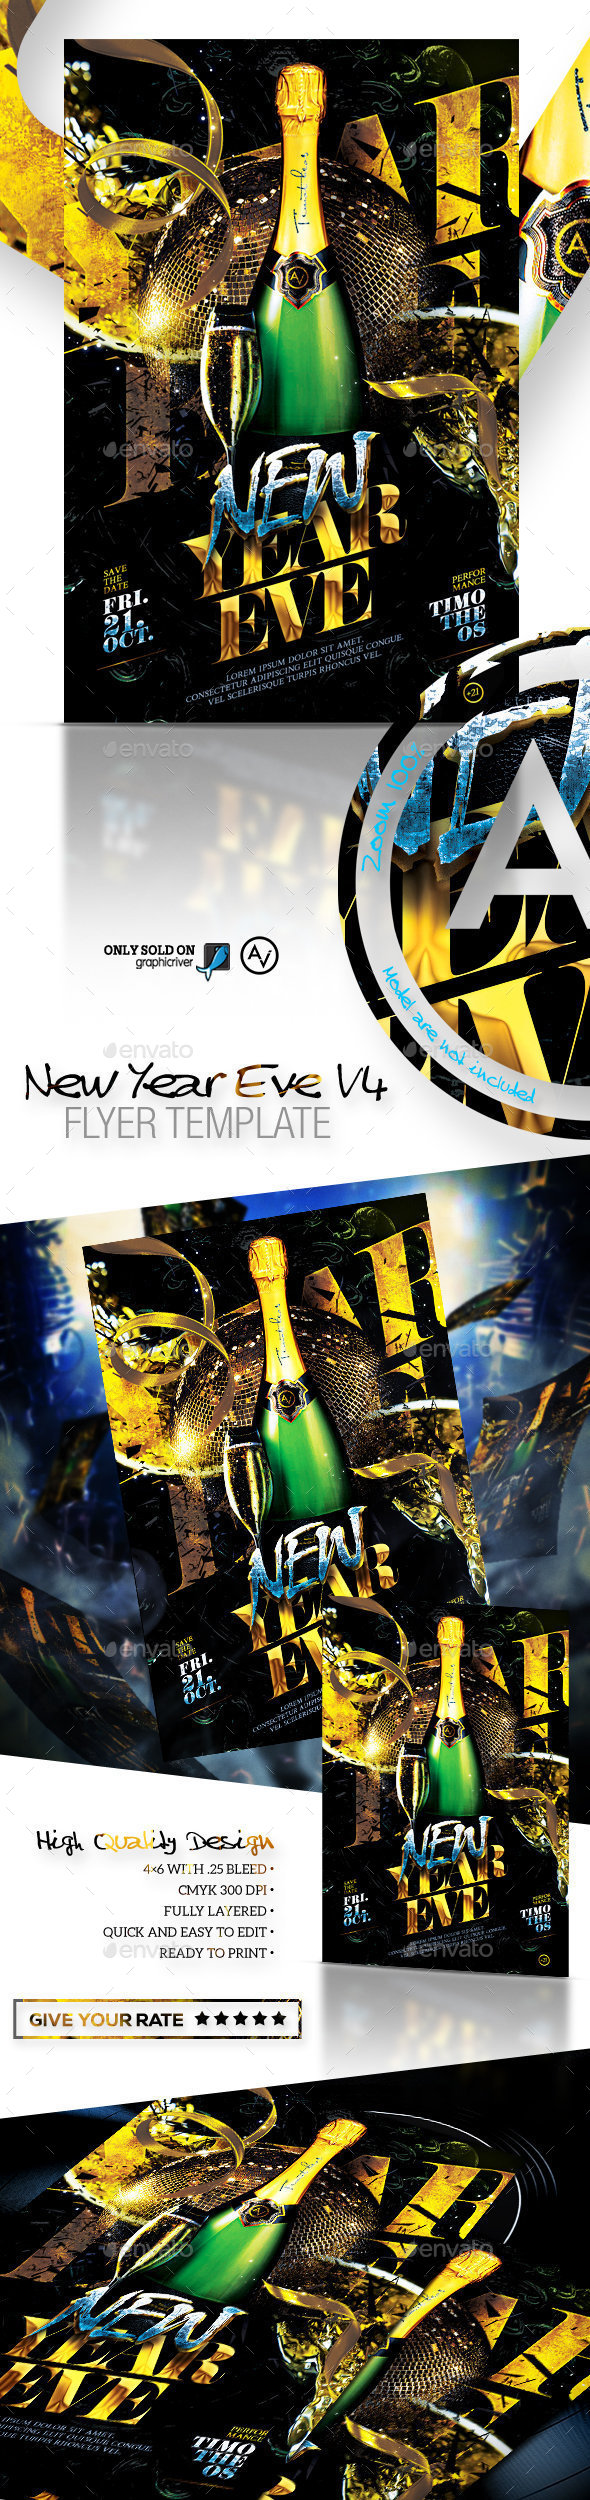 New Year Eve Flyer Template v4 - Clubs & Parties Events